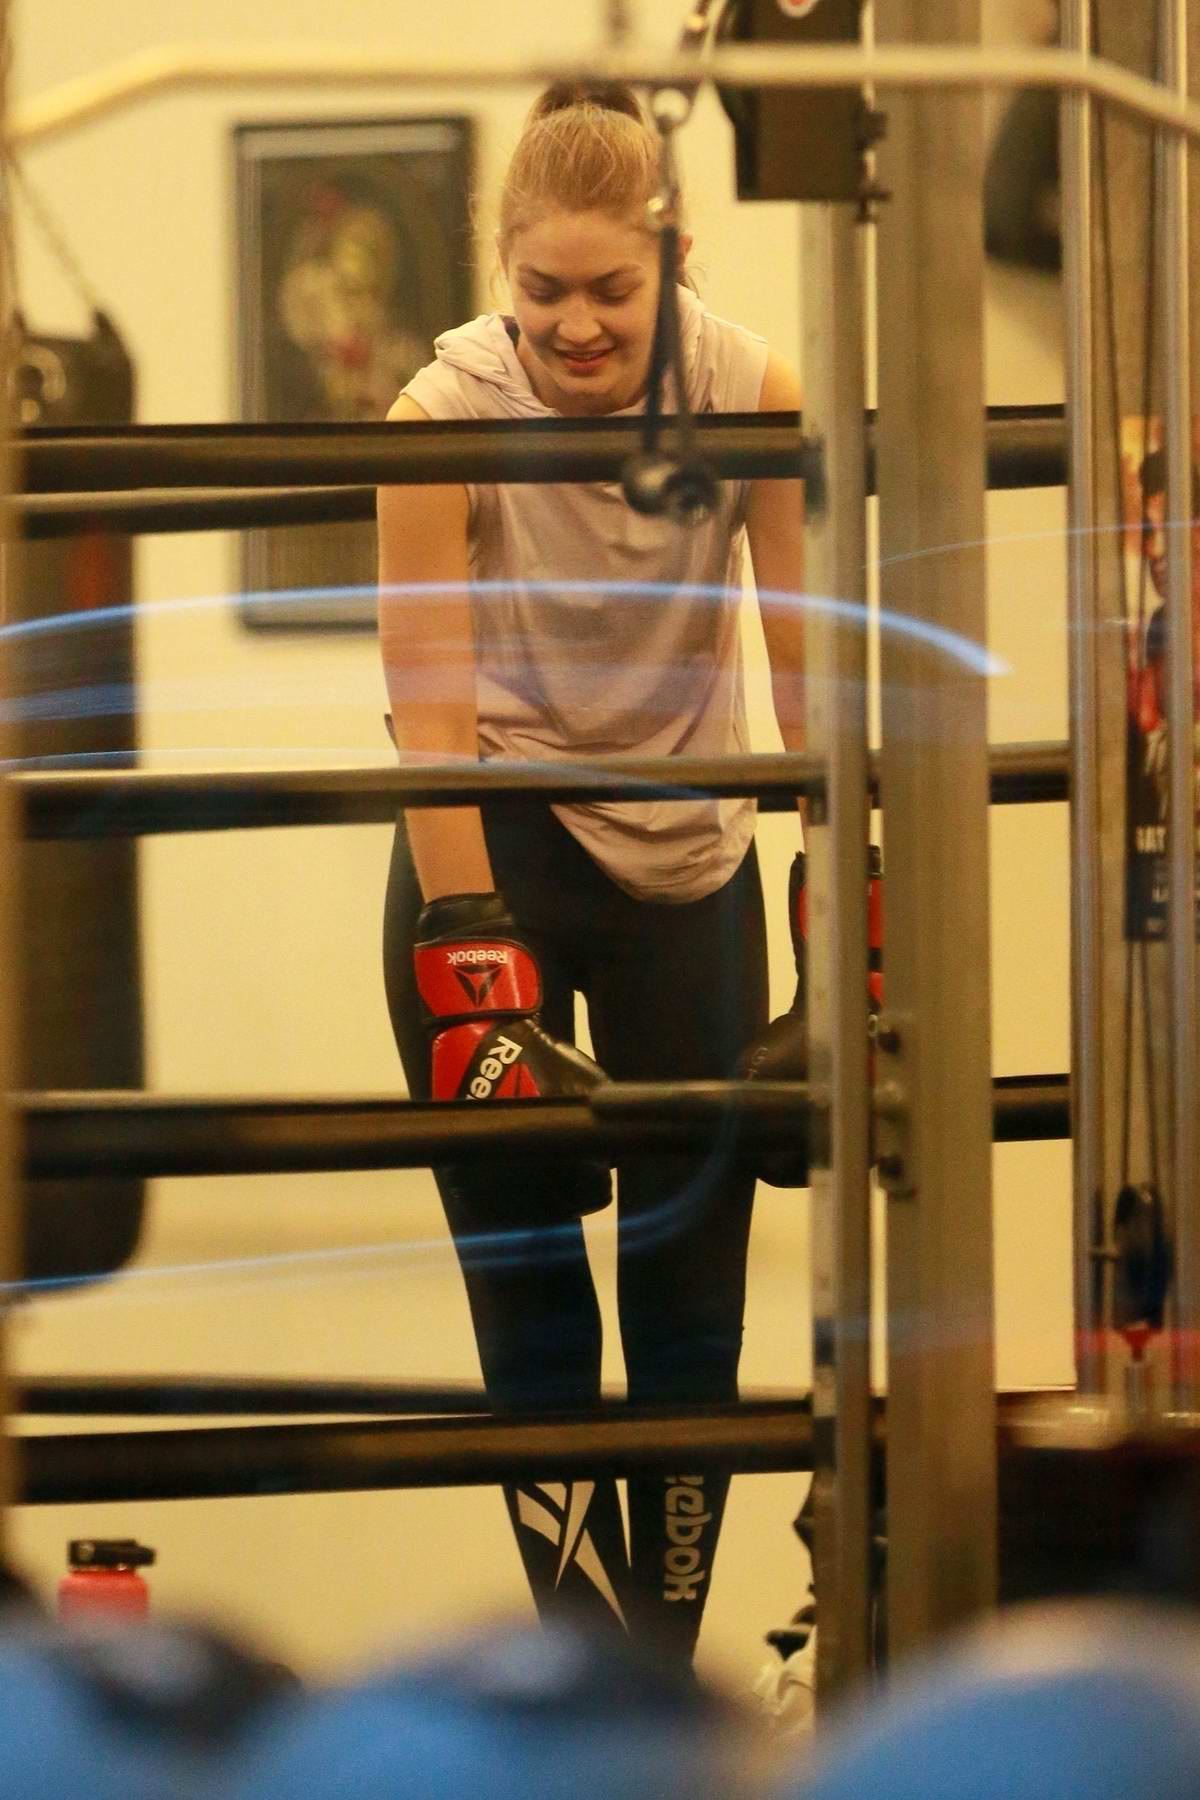 Gigi Hadid spotted during her boxing training session at the Gotham Gym in New York City